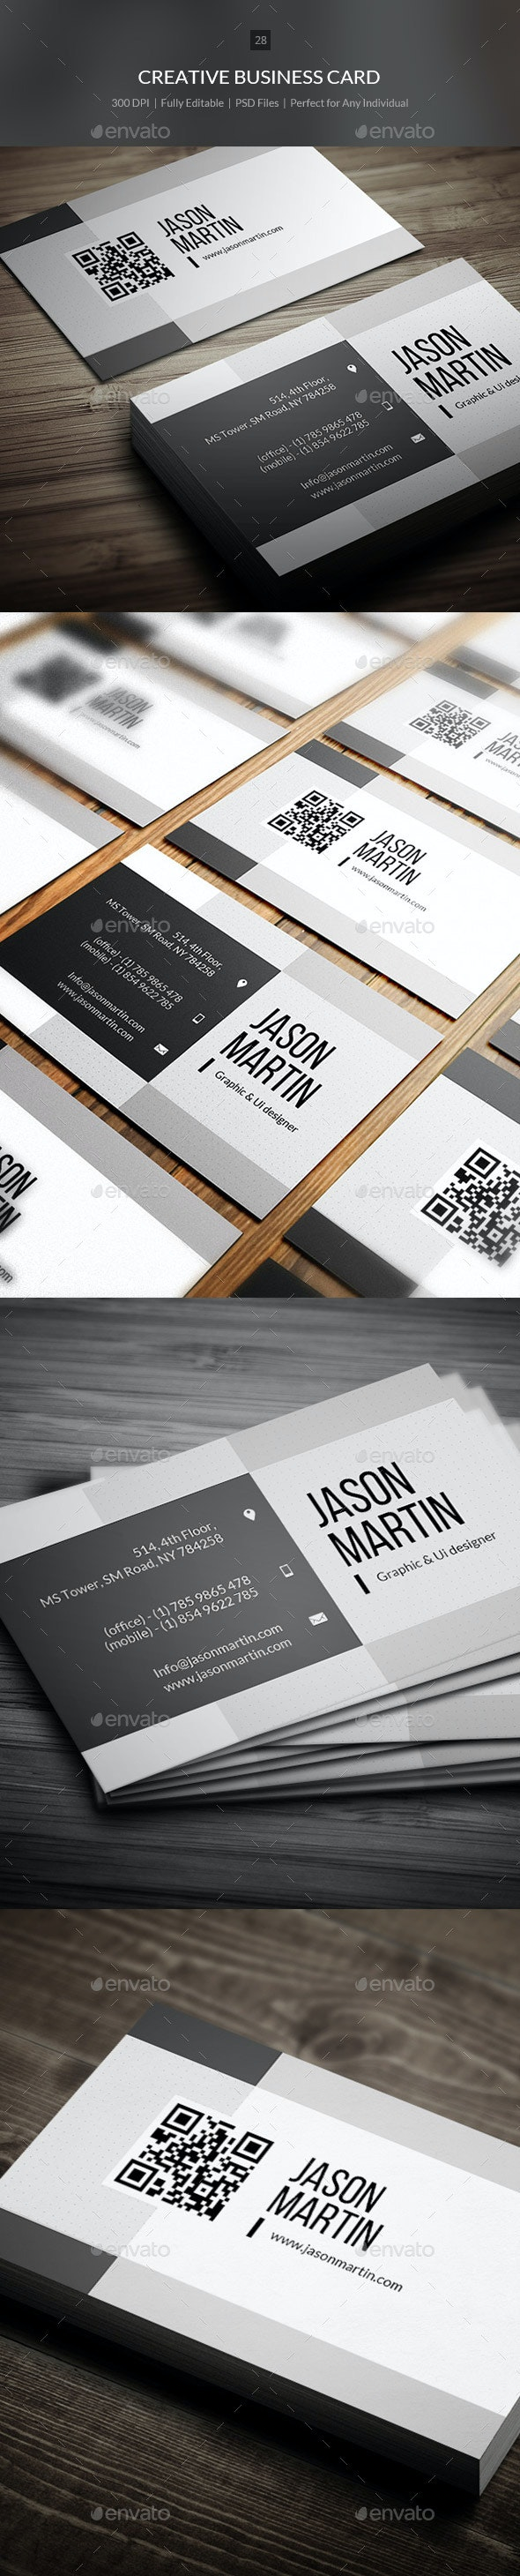 Creative Business Card - 28 - Corporate Business Cards